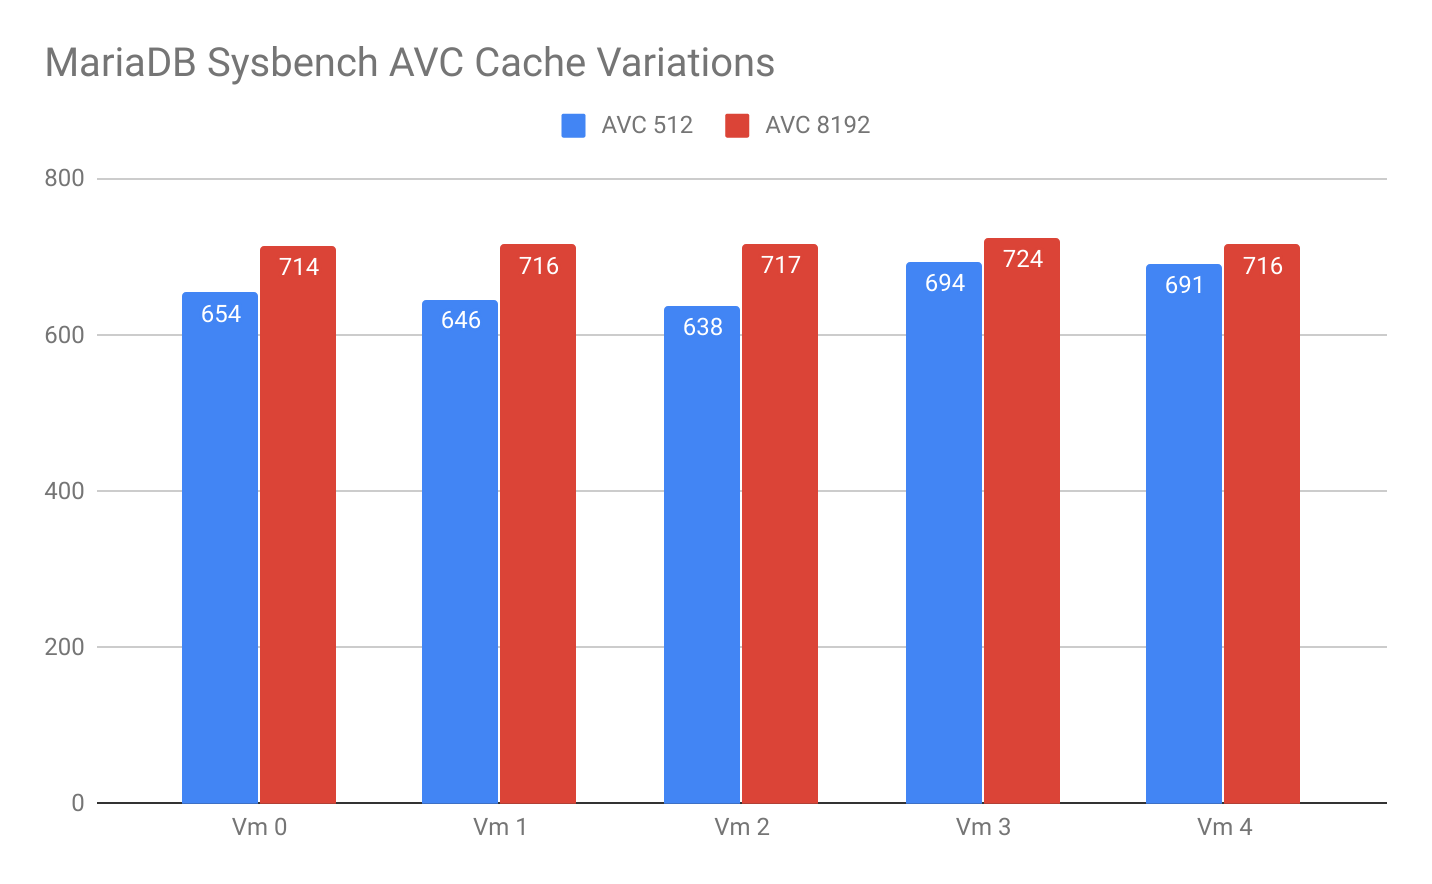 MariaDB sysbench AVC cache variations